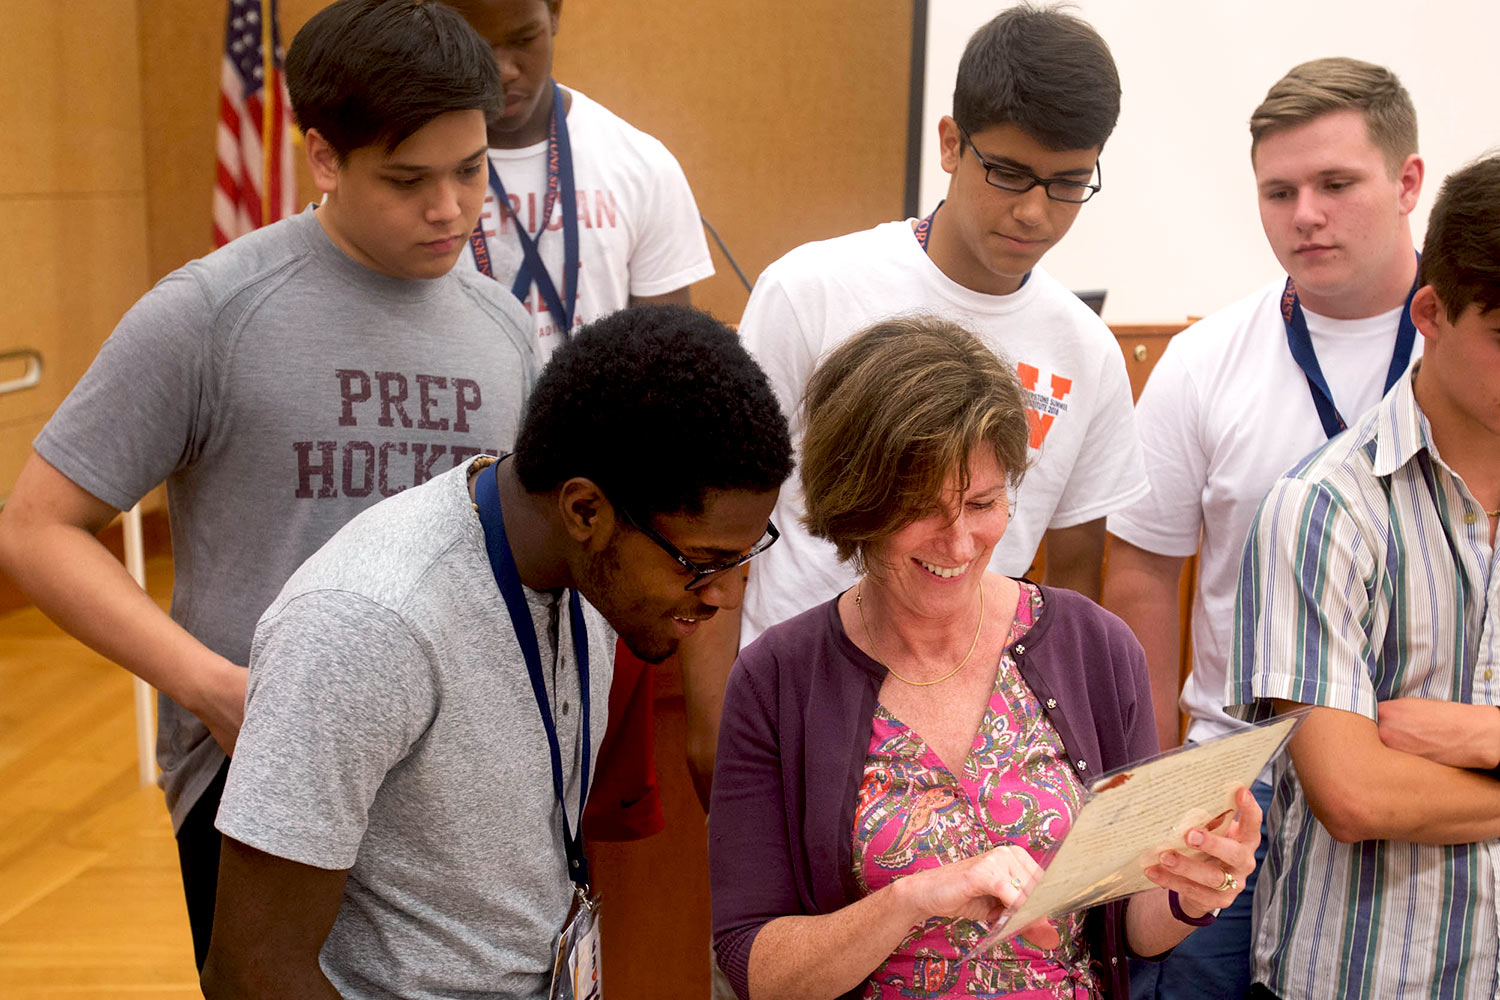 Riser, center, shows another Jefferson letter to Shawn Thomas of Woodbridge, left, and other students at the Cornerstone Summer Institute. (Photo by Sanjay Suchak/University Communications)